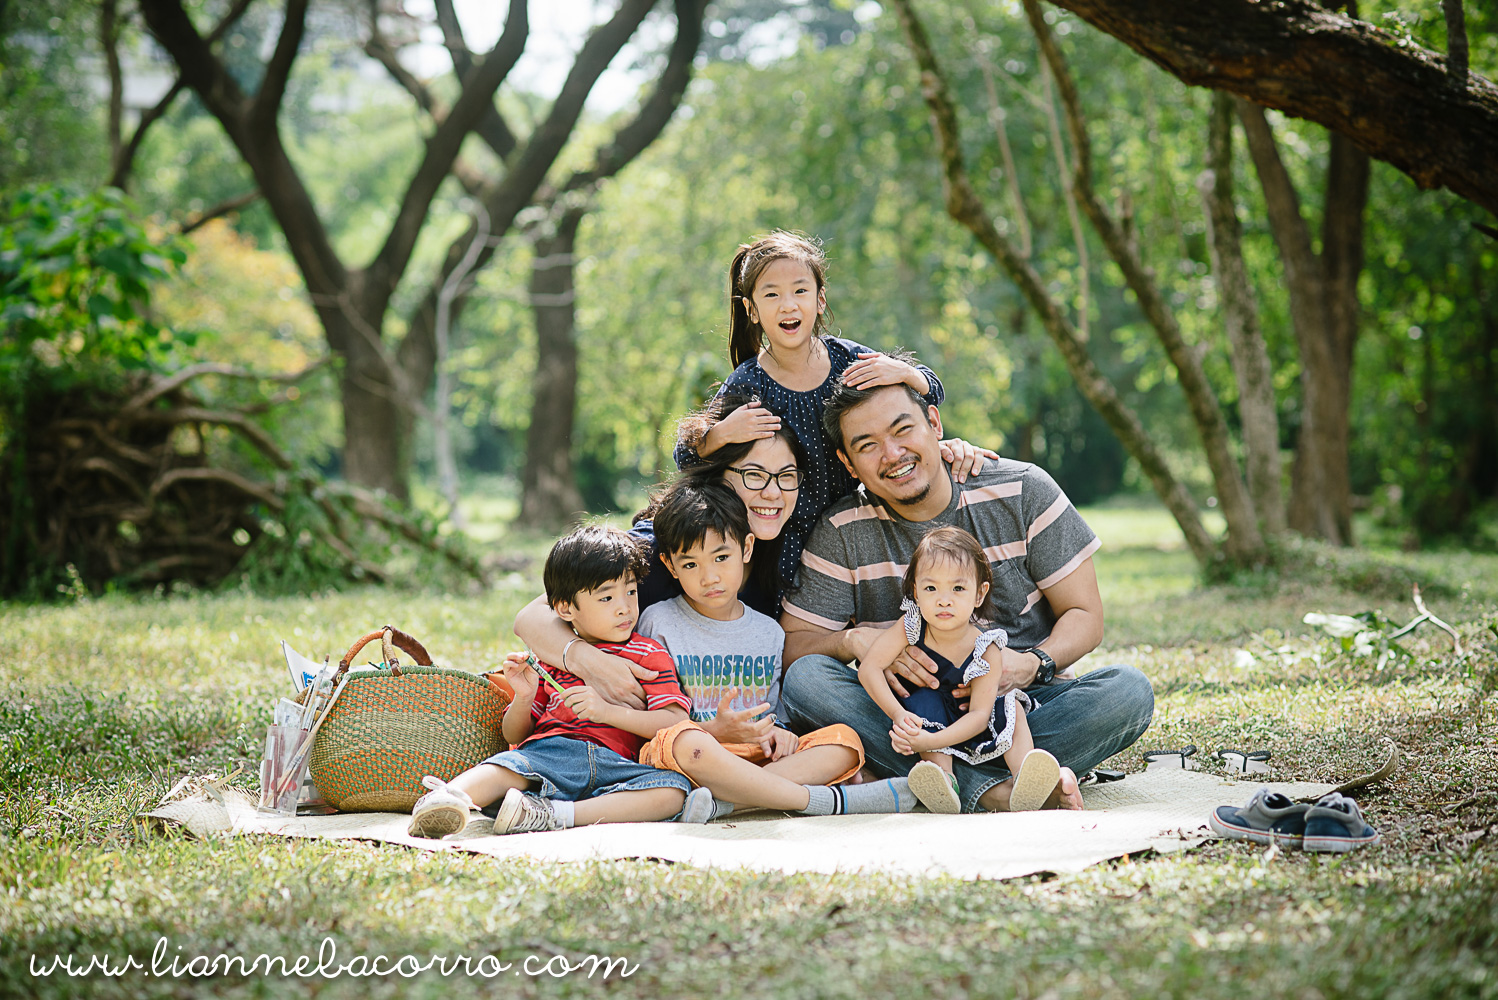 Photograpy by Lianne Bacorro - A Day in the Life Family Session - Roldan Family - edited-204